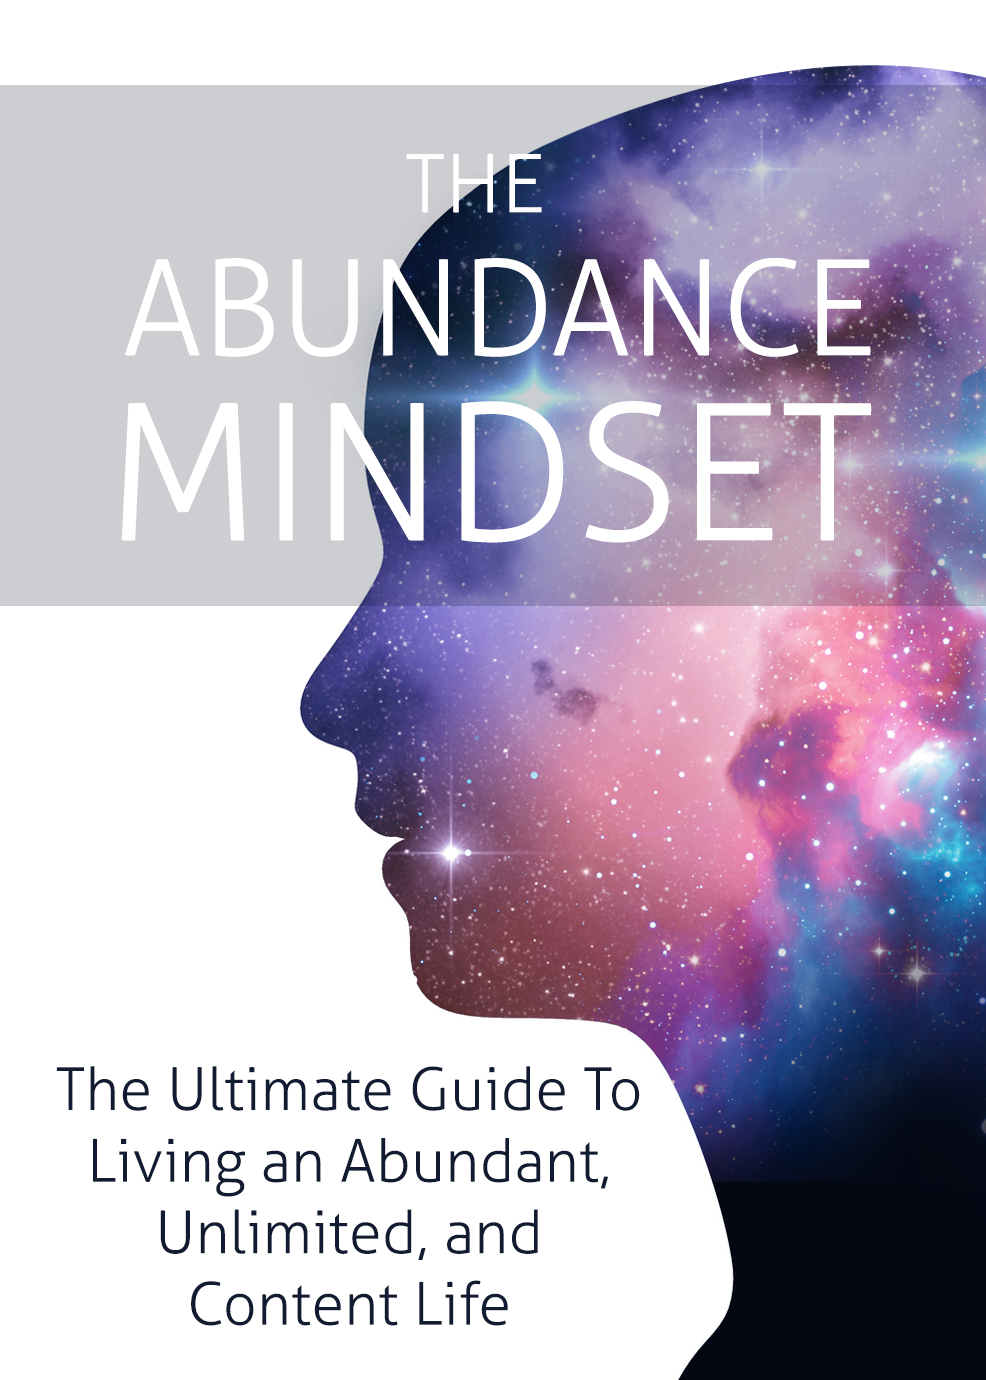 The Abundance Mindset (The Ultimate Guide To Living An Abundant, Unlimited, And Content Life) Ebook's Ebook Image